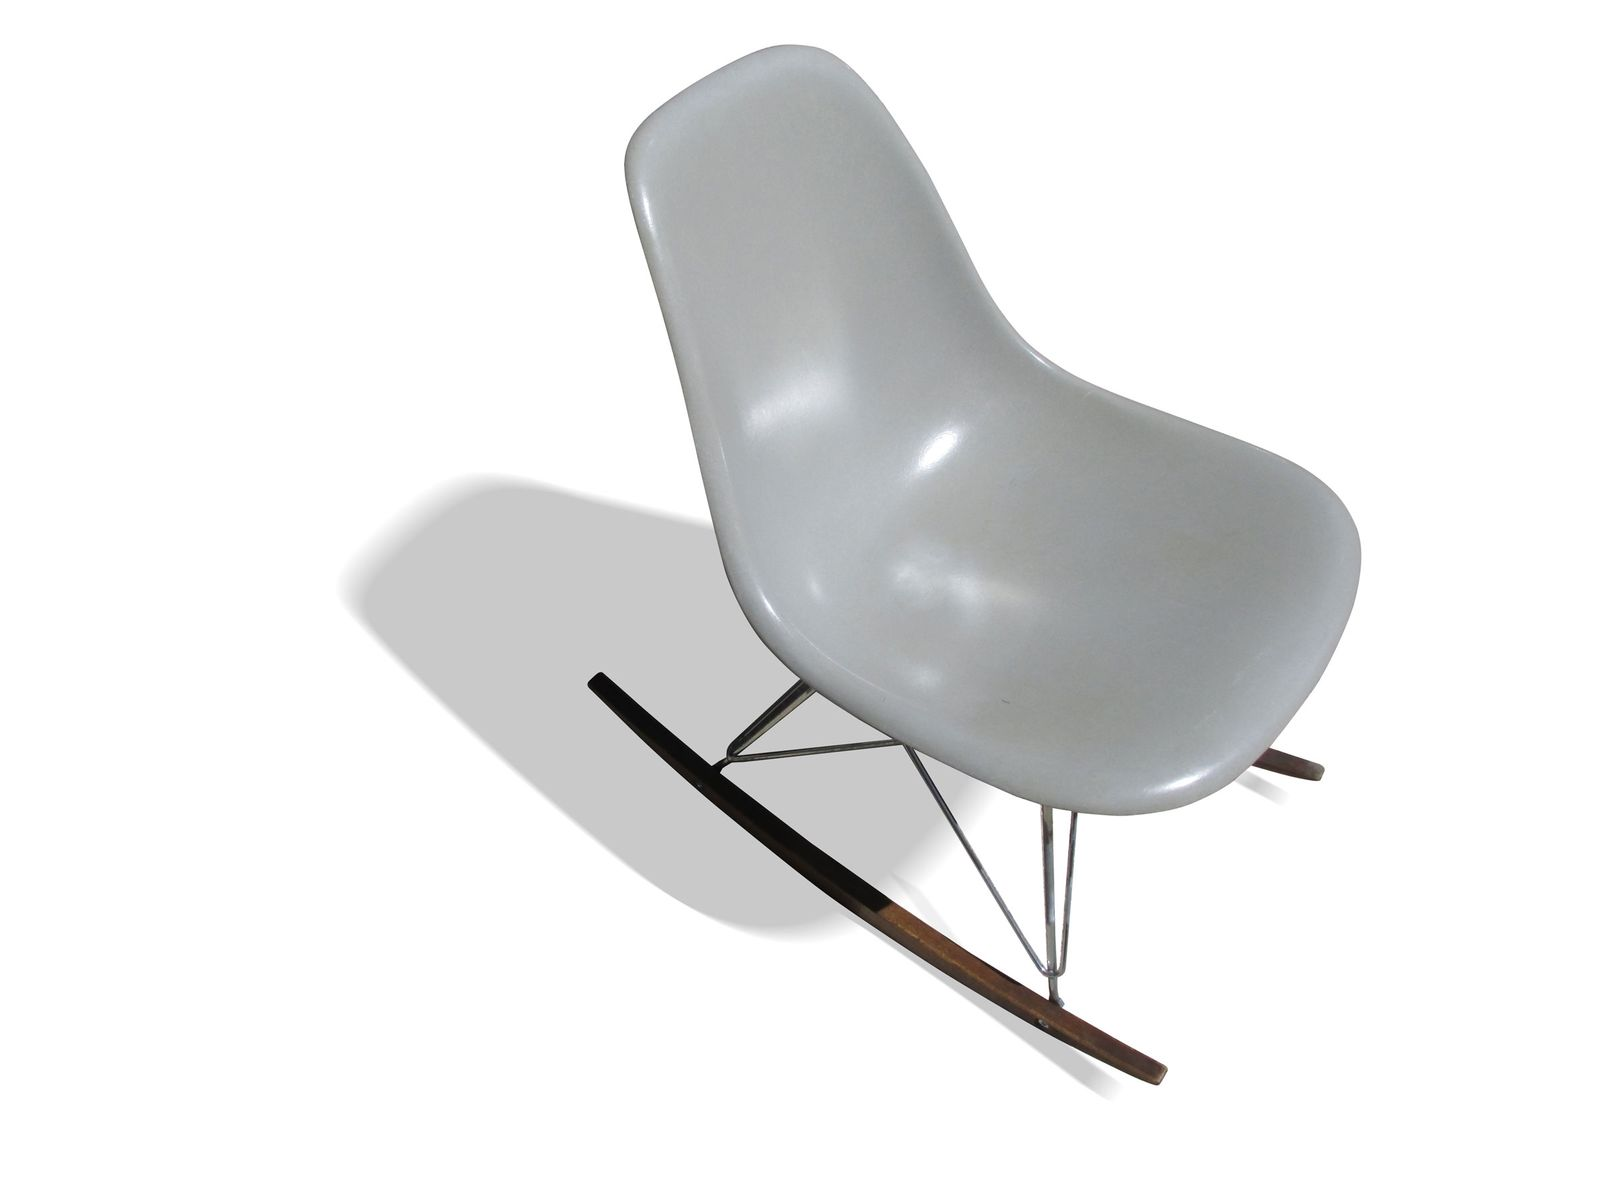 Grey Rocking Chair by Charles & Ray Eames for Herman Miller 1960s